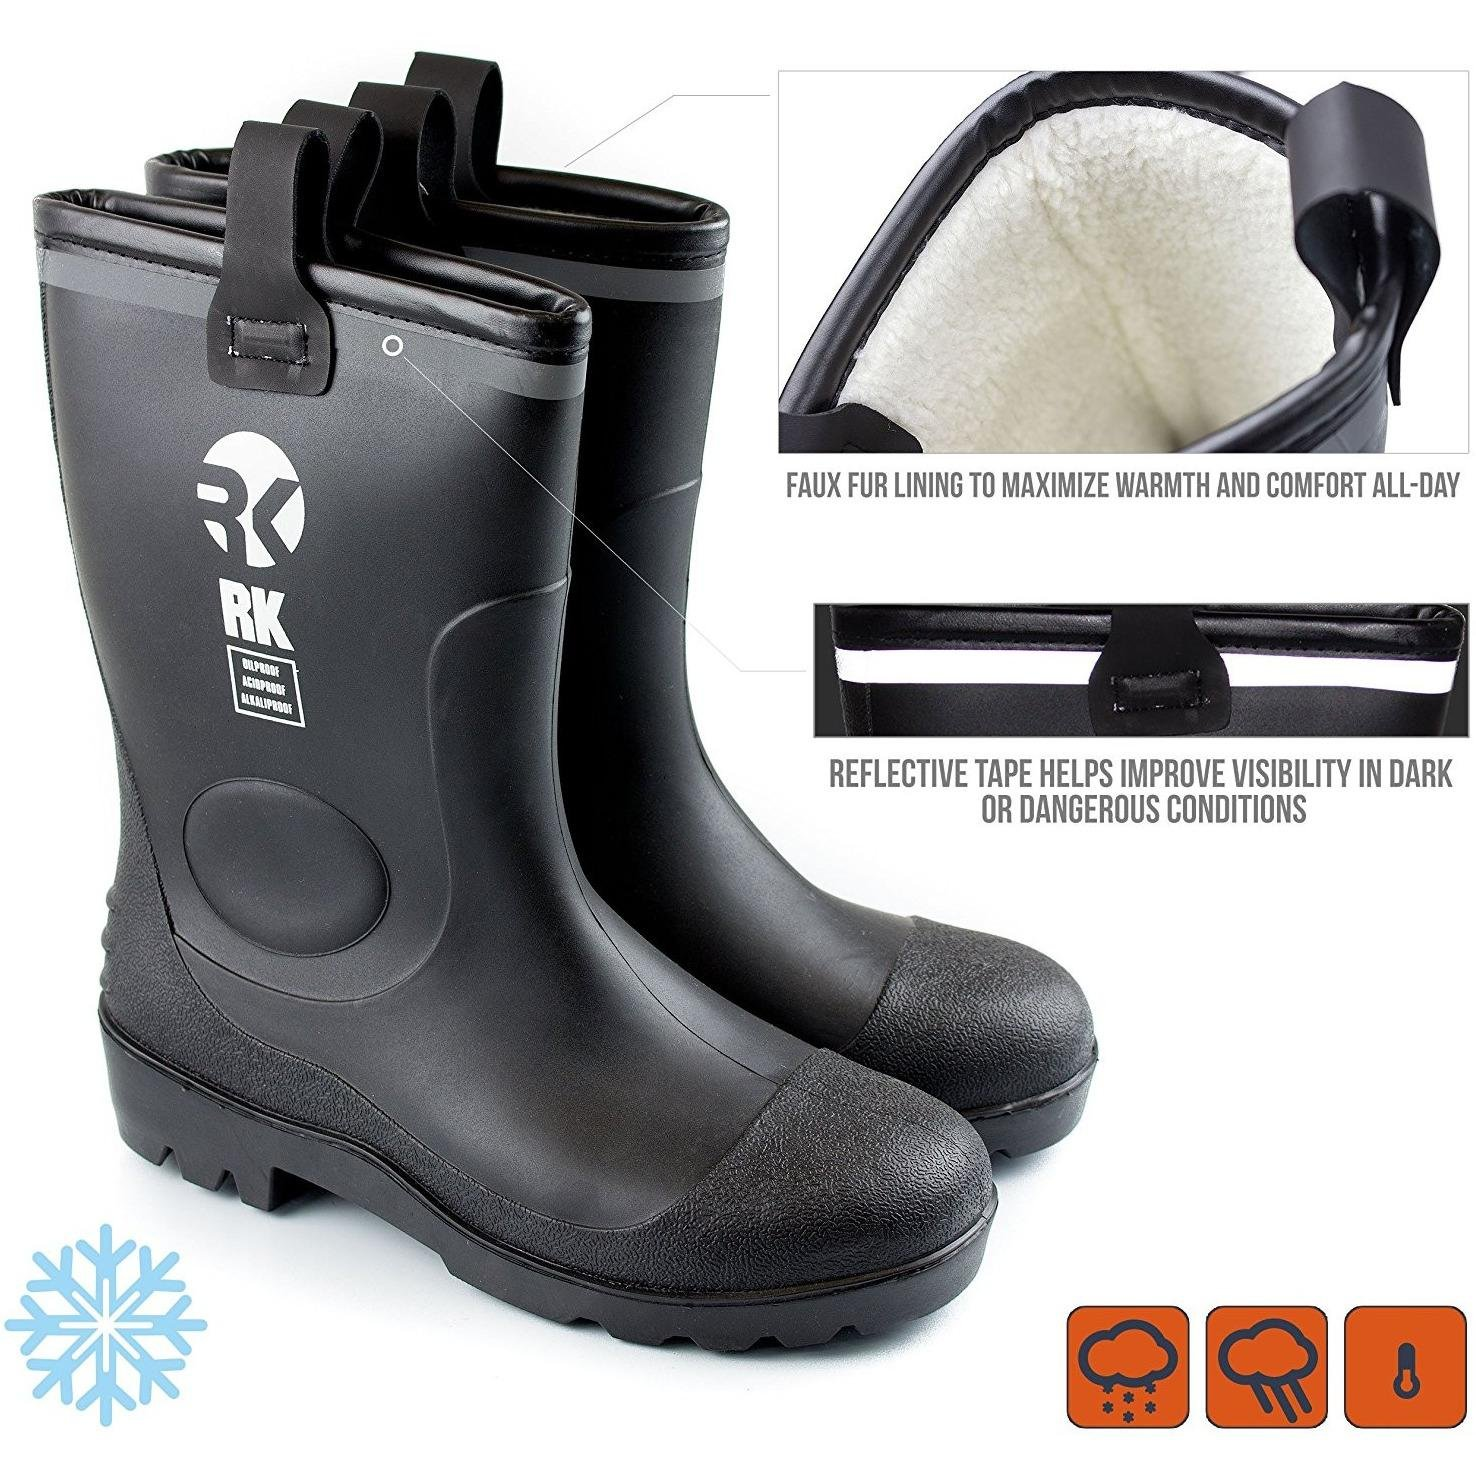 RK Mens Insulated Waterproof Fur Interior Rubber Sole Winter Snow Cold Weather Rain Boots (9 D(M) US, Black)